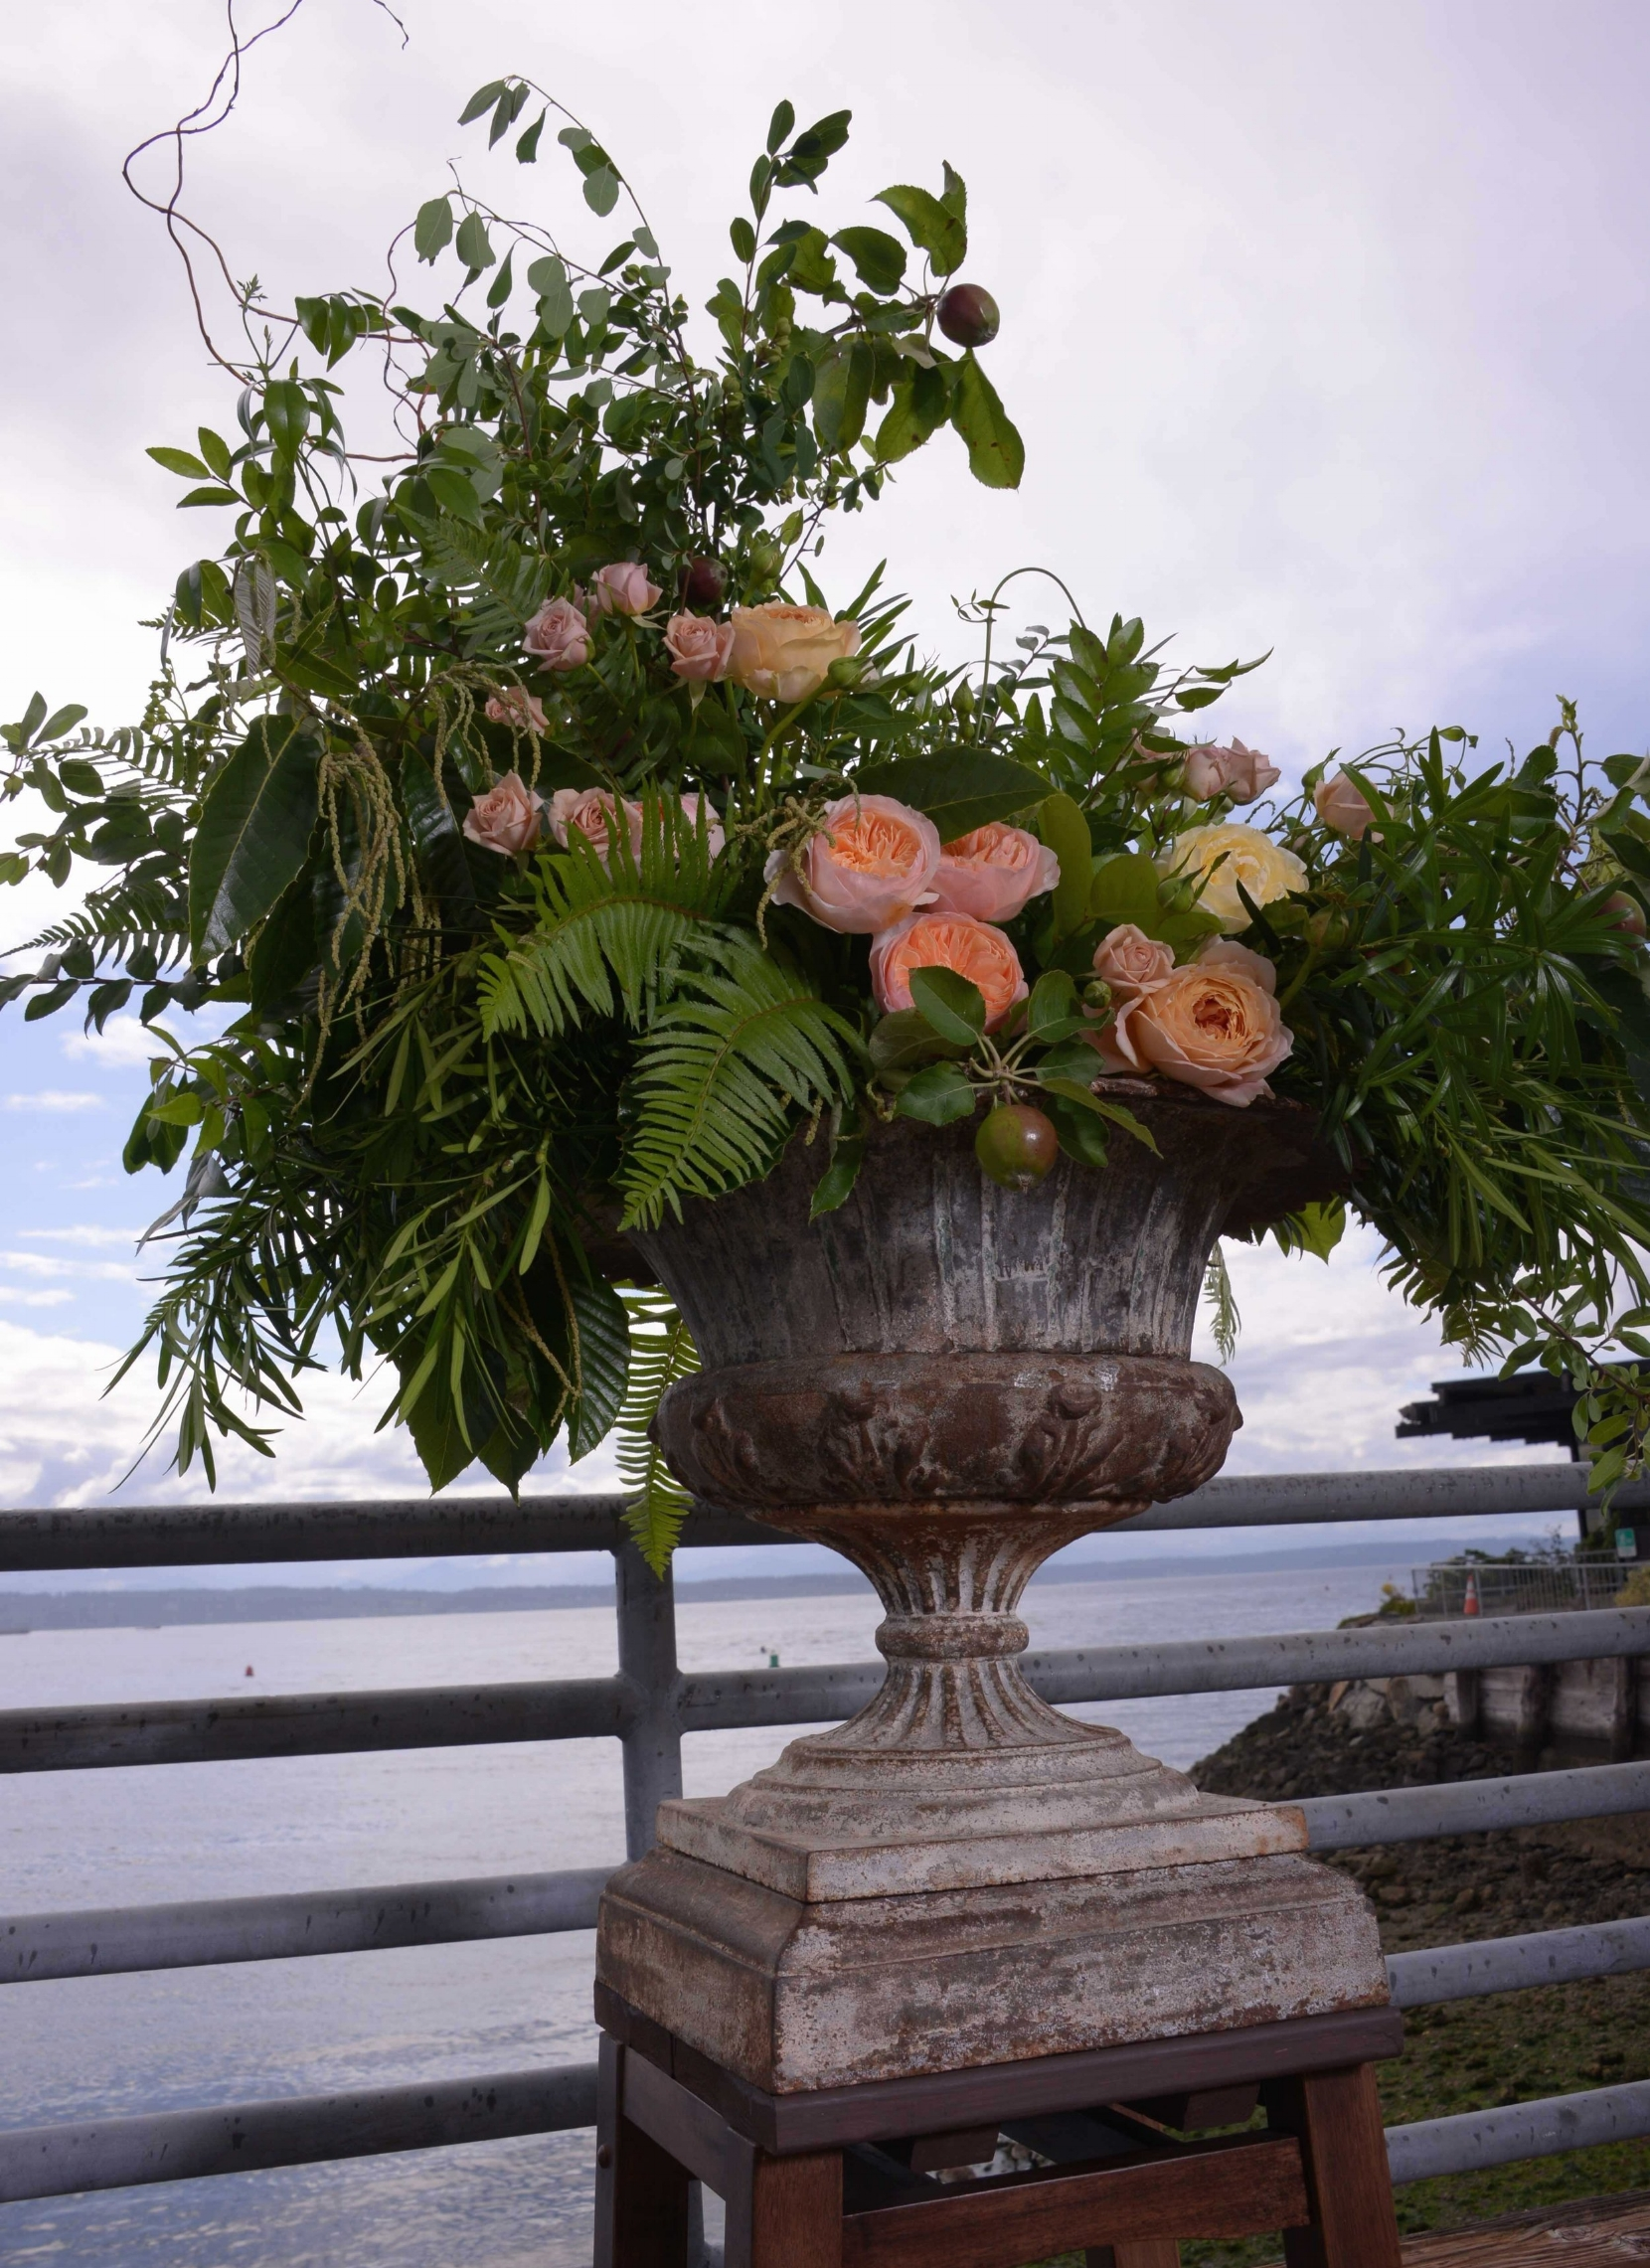 Ceremony antique urn and garden roses - Paul Dudley Photography